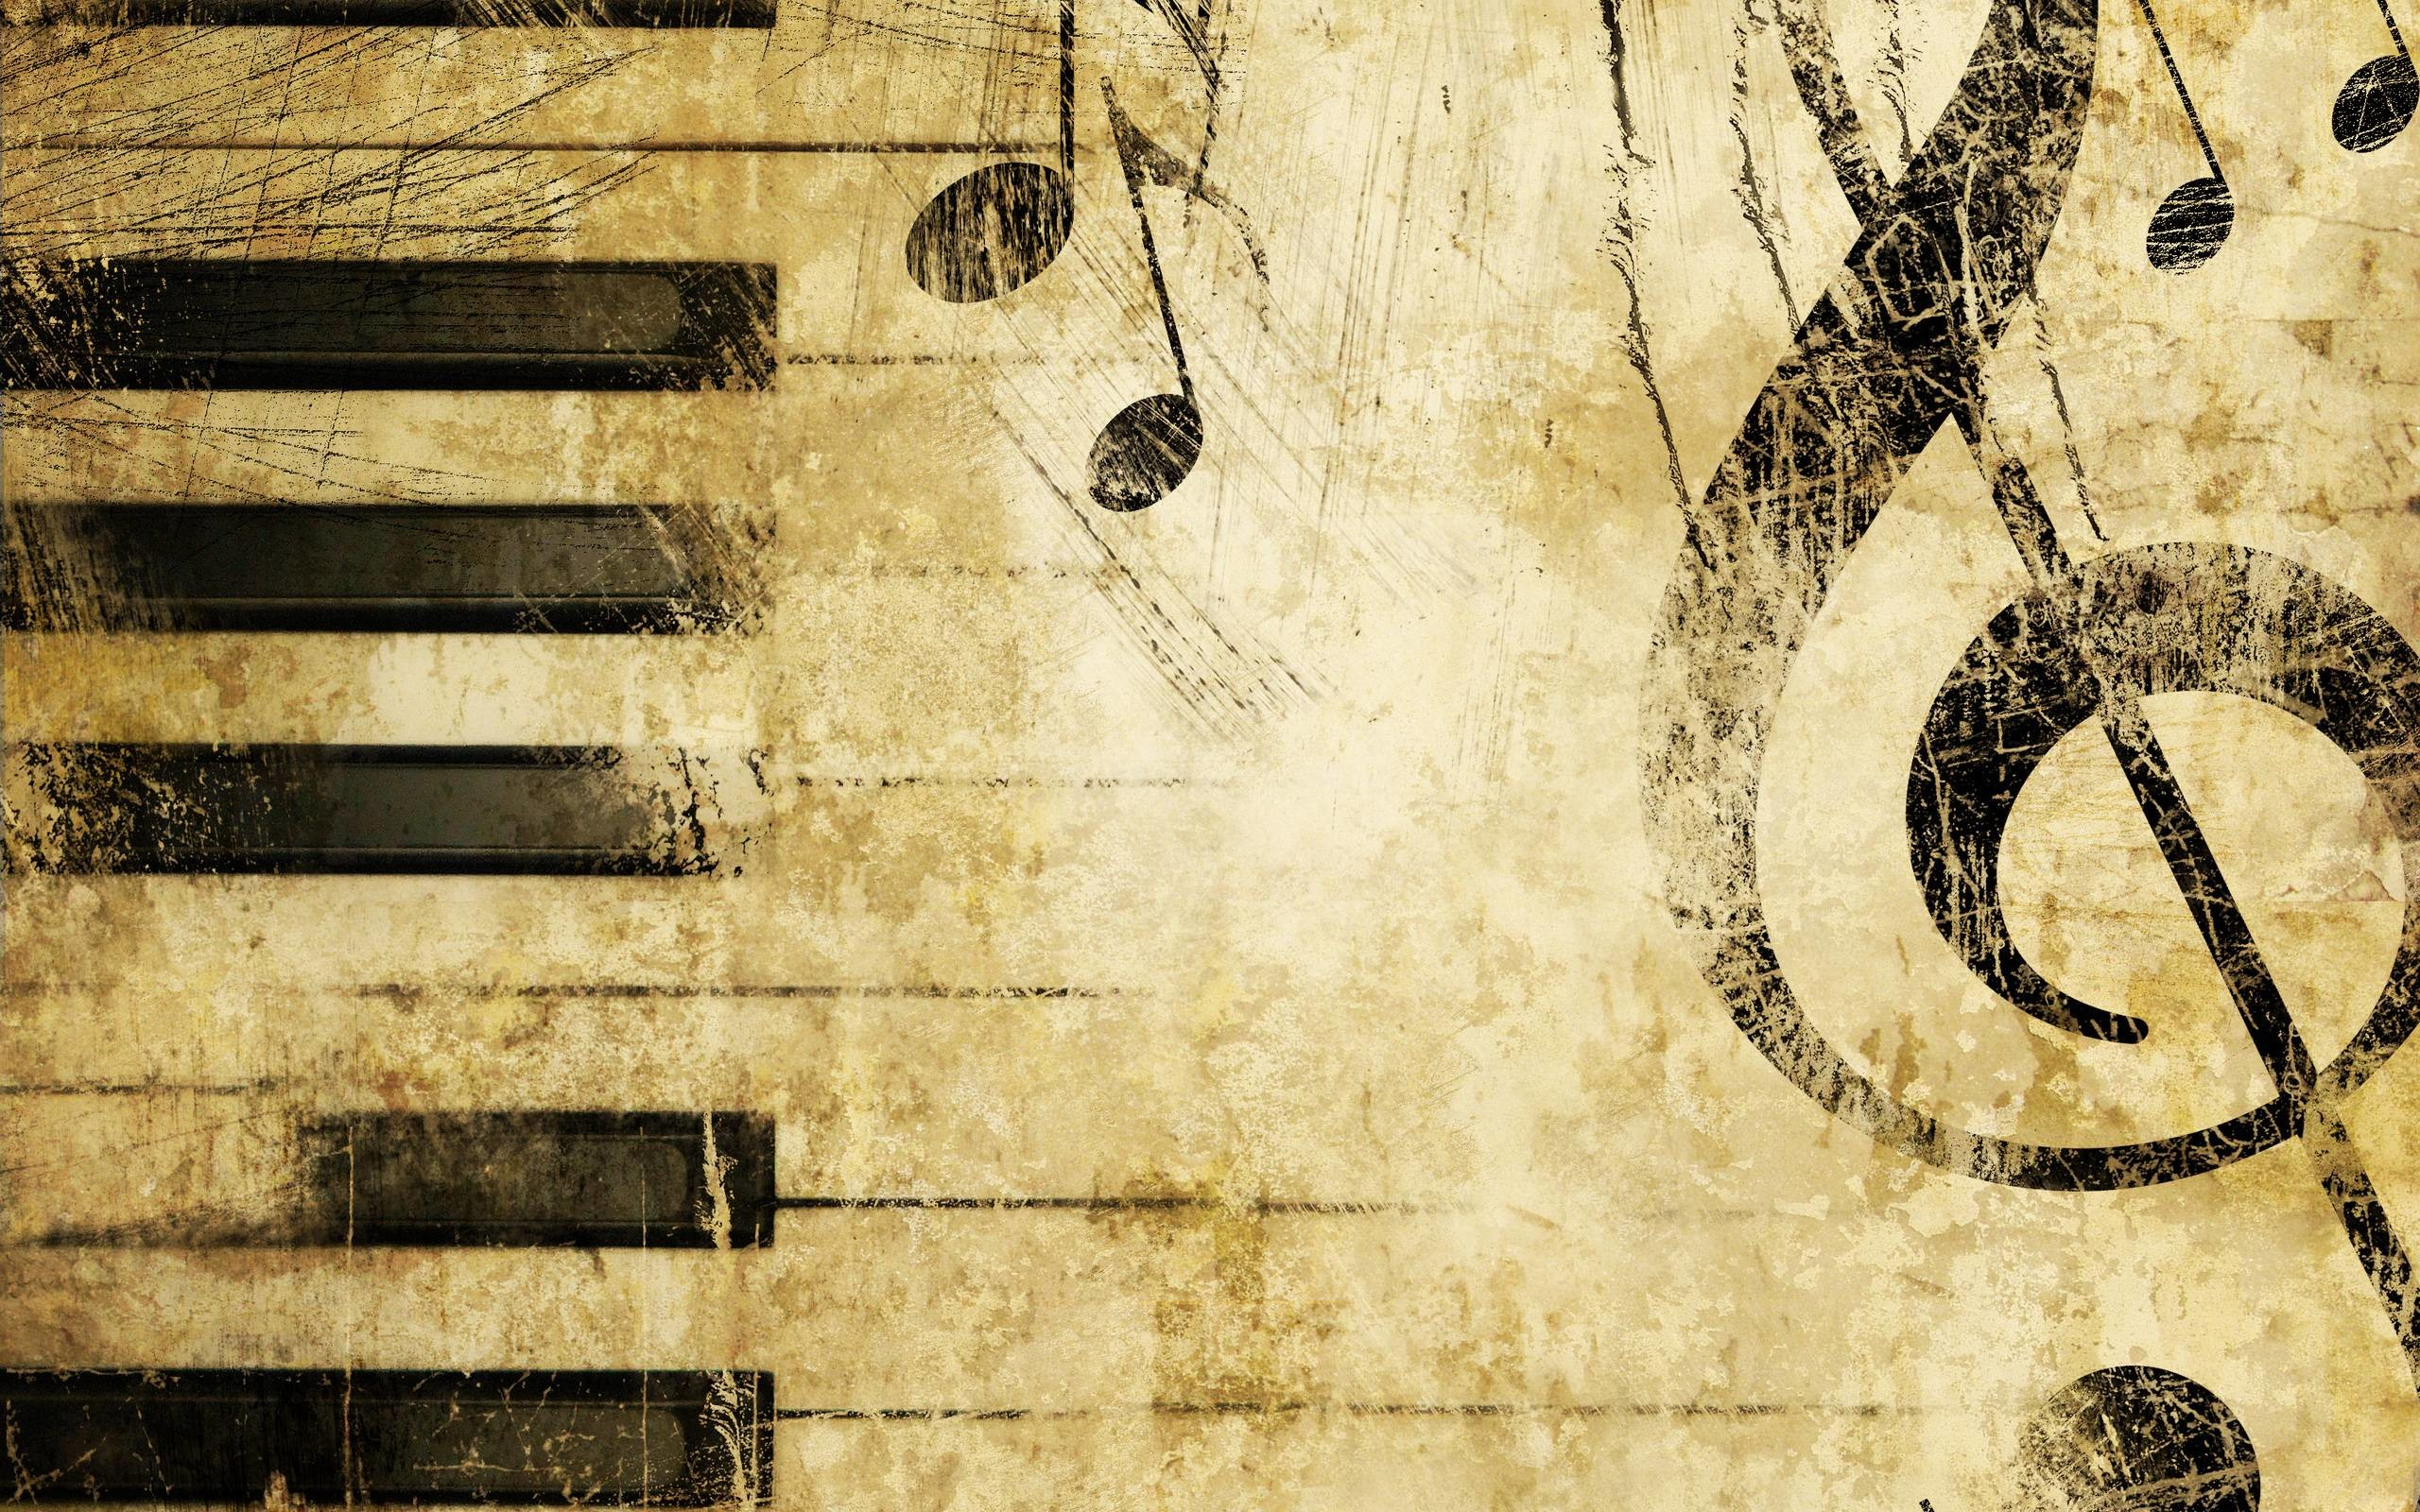 Good Wallpaper Music Note 3 - 672988-vertical-note-music-wallpapers-2560x1600-free-download  HD_282741.jpg